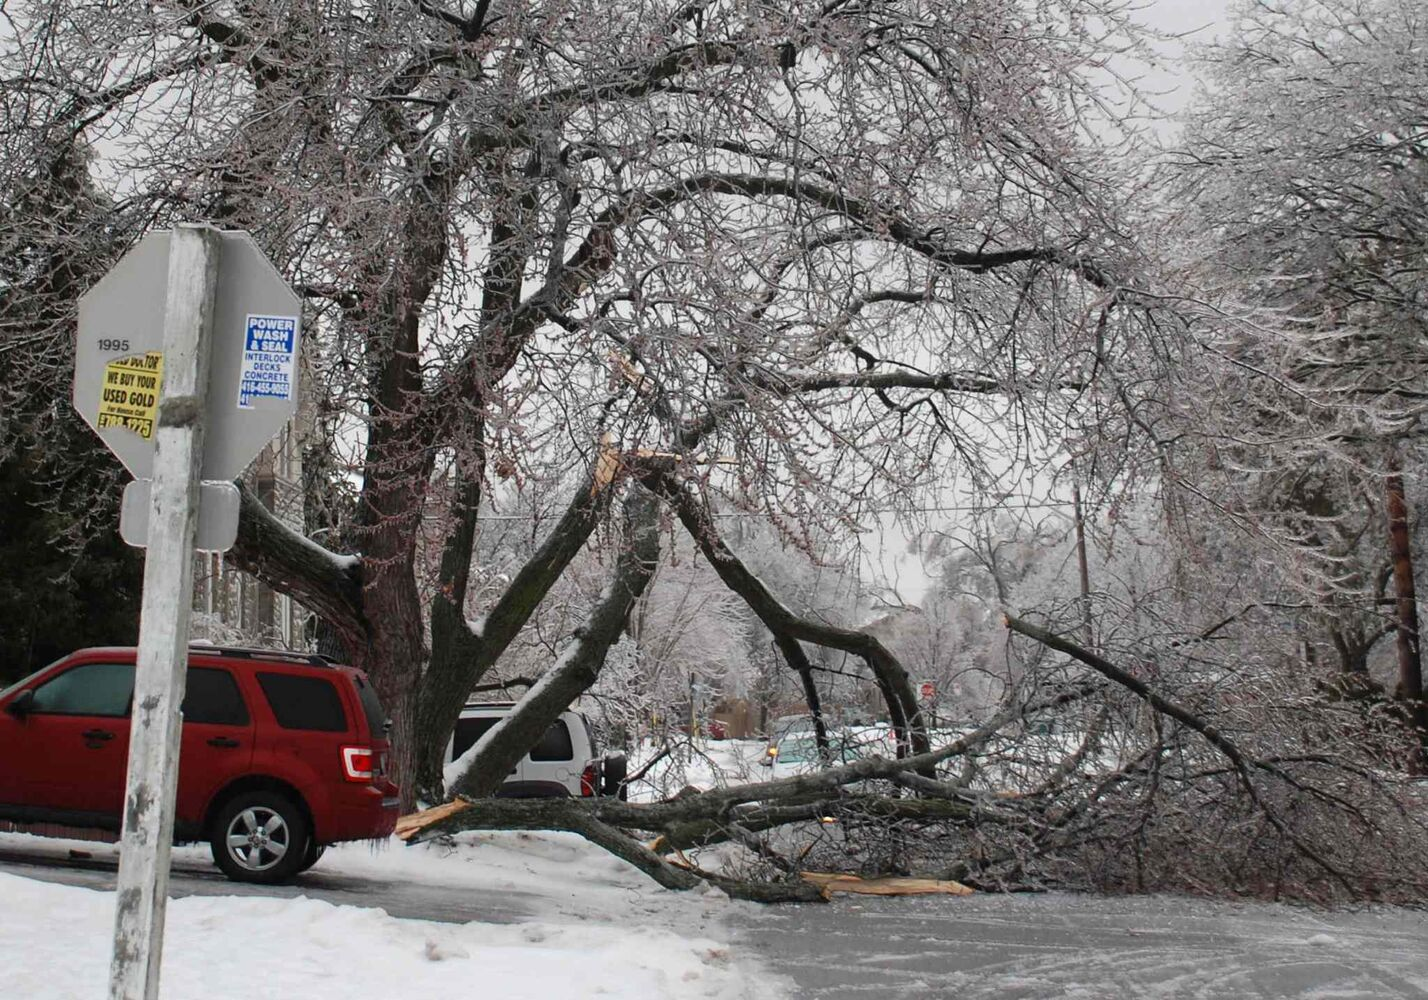 Ice-covered tree limbs block a road in northern Toronto Sunday. (Spiro Ilo / The Canadian Press)